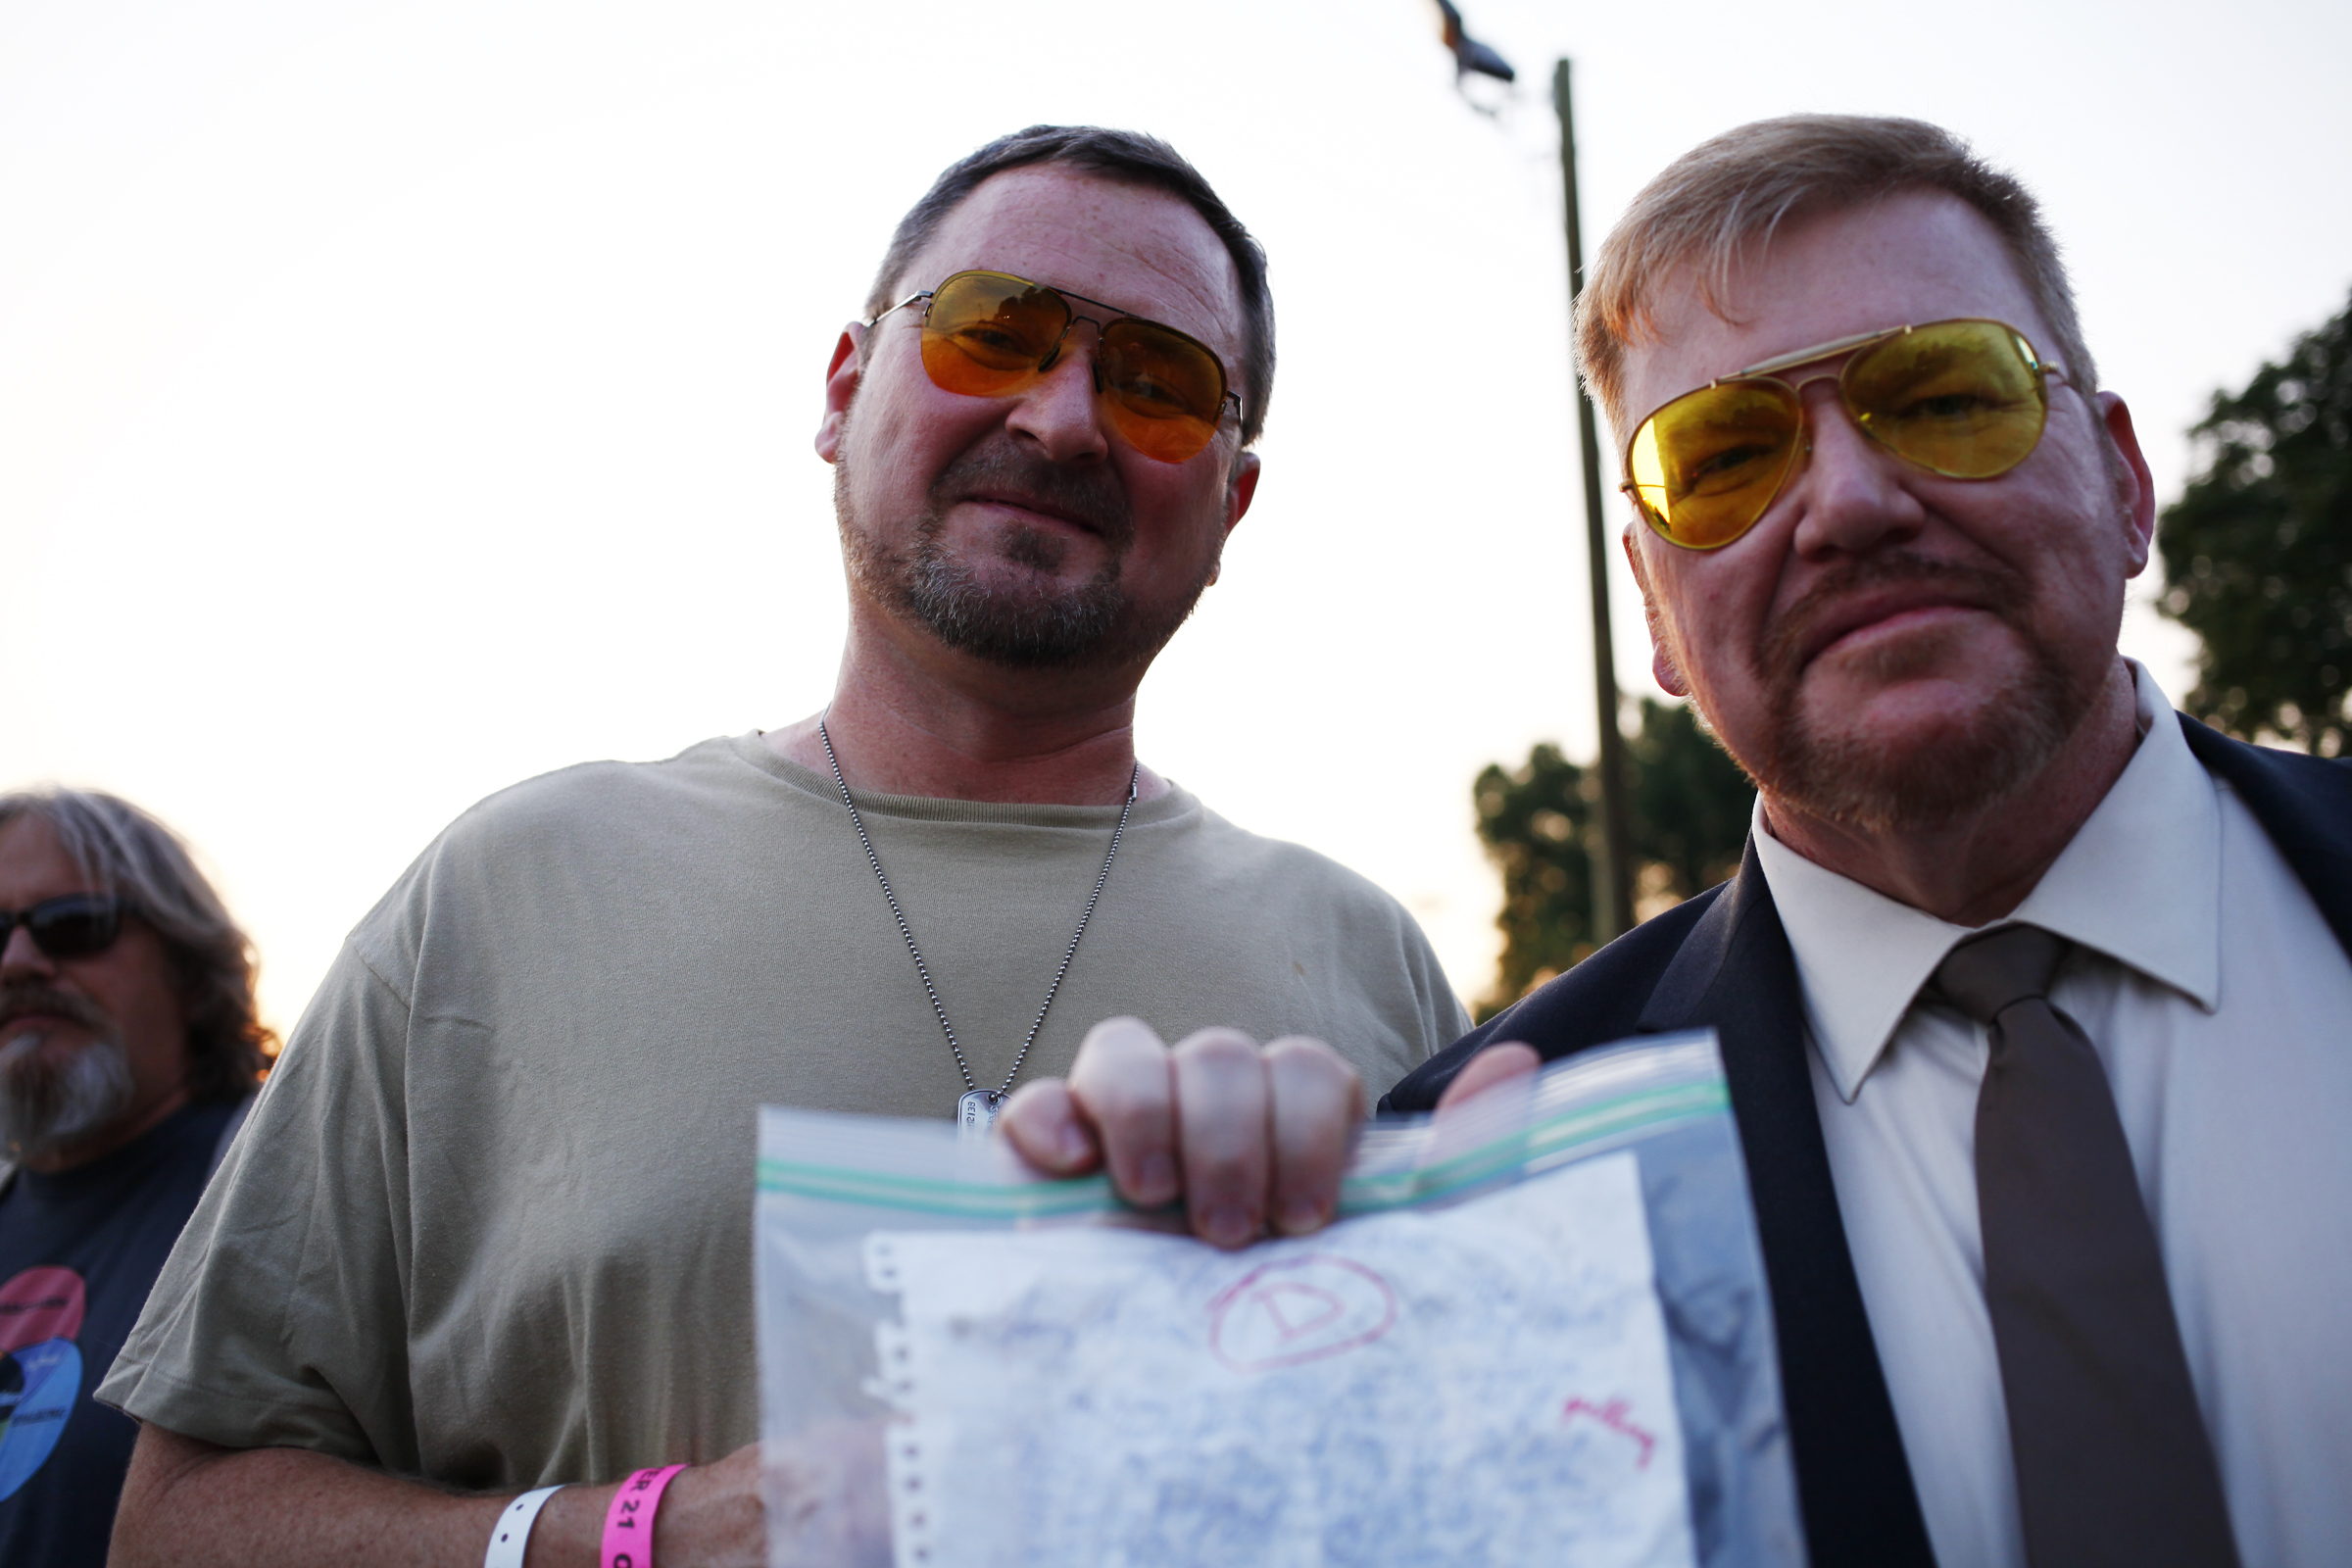 Bryan Beisner, of Louisville, and Ed Fulop of North Palm Beach, Fla., pose with Larry's Homework while dressed as Walter Sobchak.